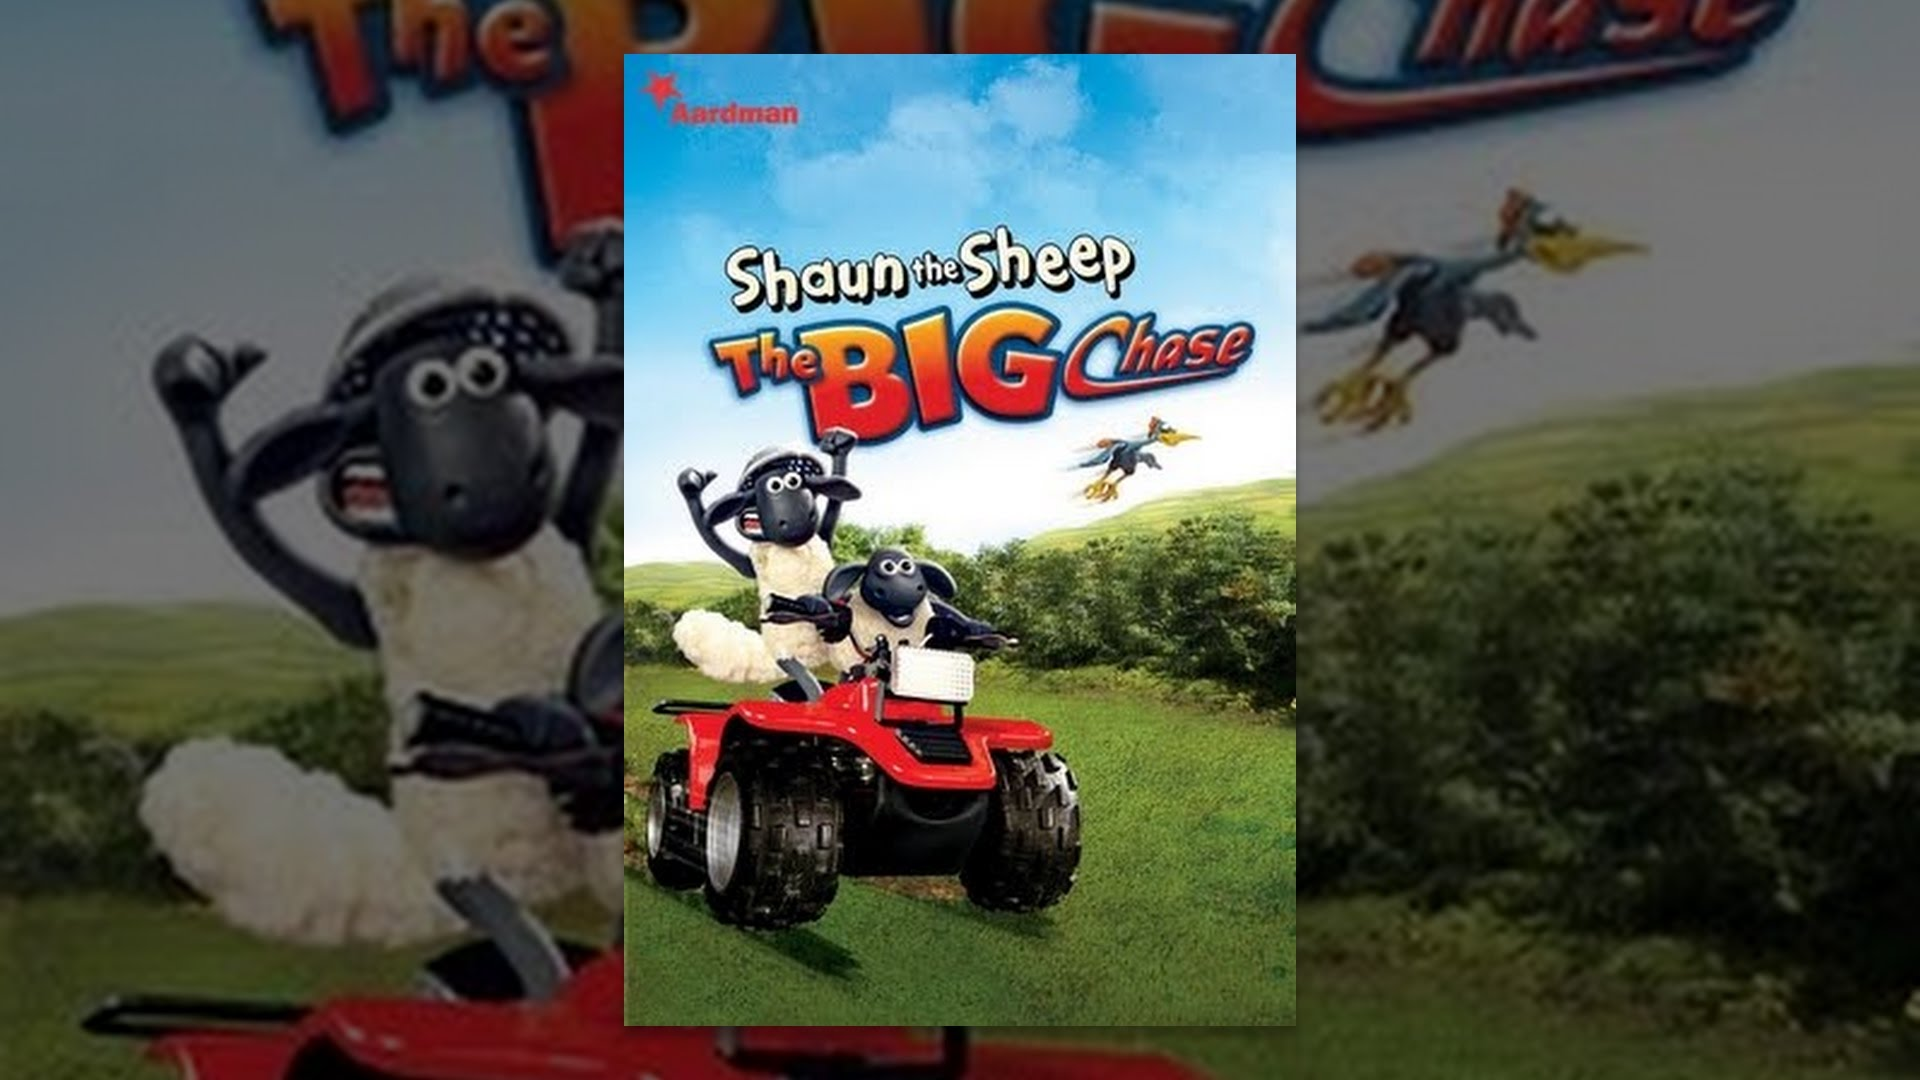 Shaun the Sheep: a grande perseguição